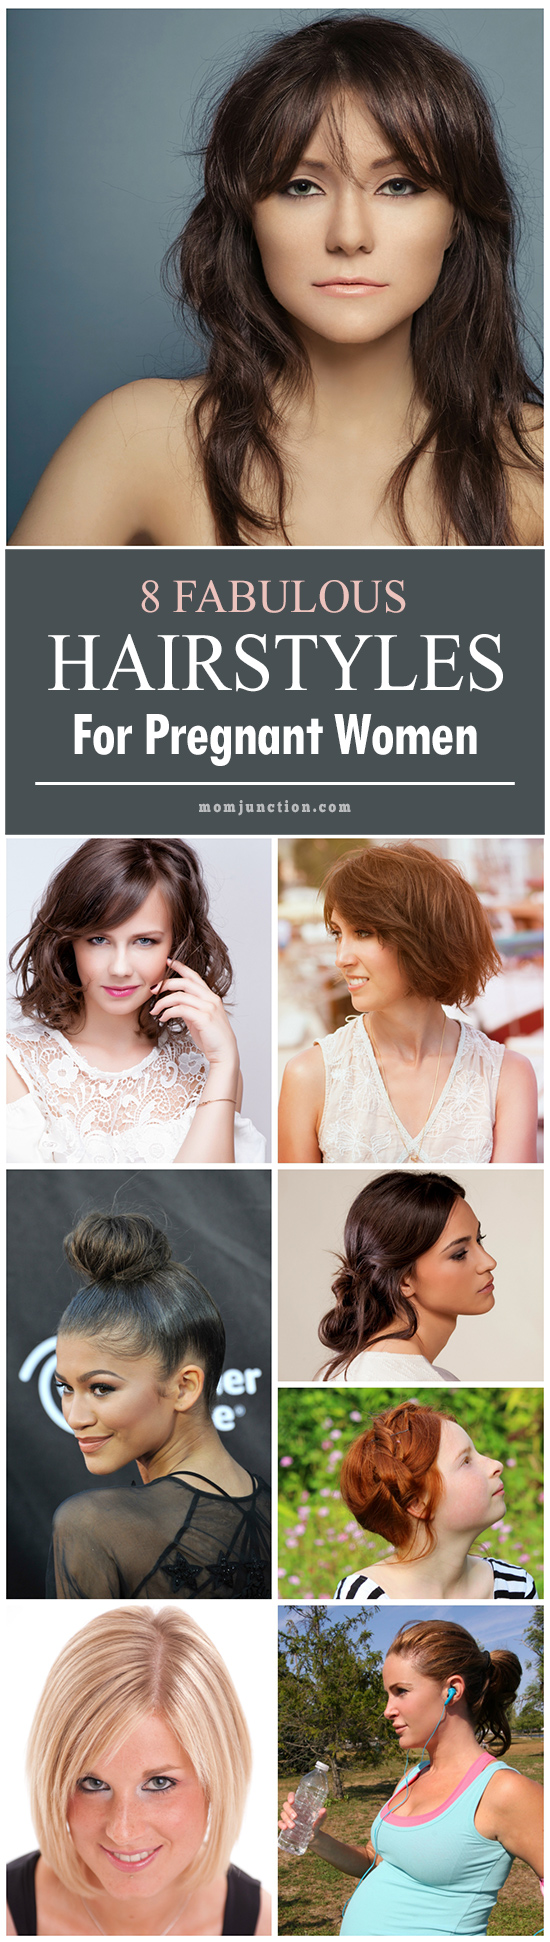 Pleasing 8 Fabulous Hairstyles For Pregnant Women Hairstyles For Men Maxibearus